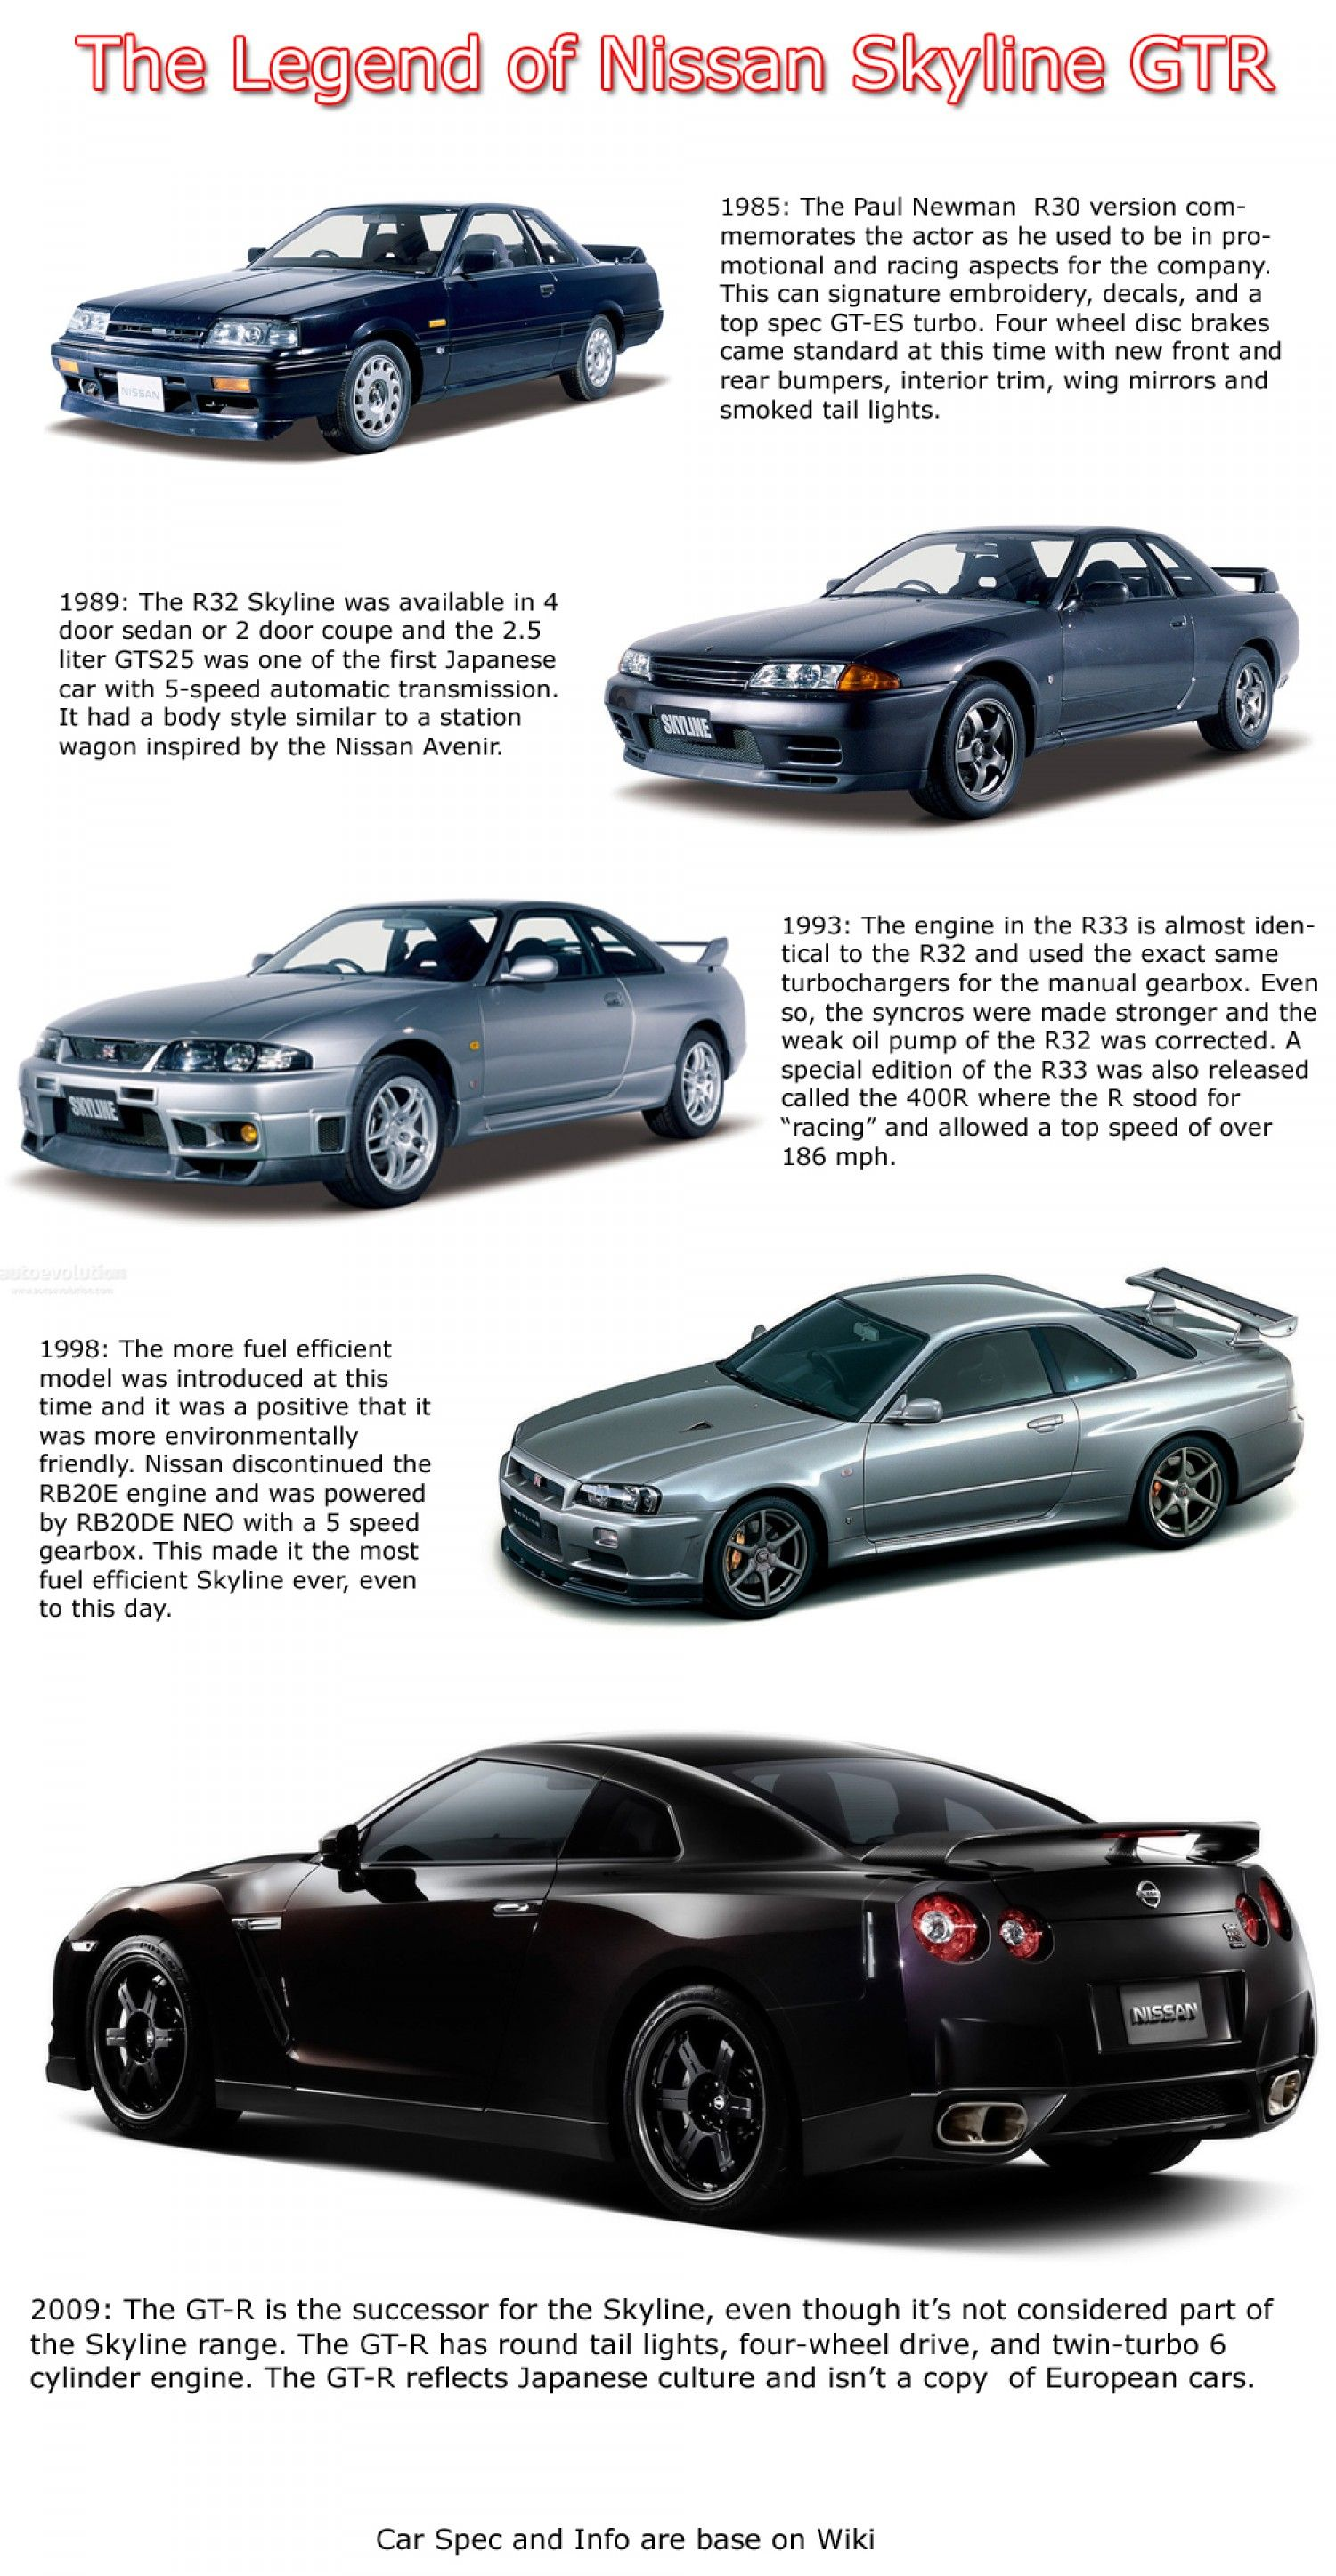 Look How Much The Nissan Skyline Has Evolved Nissan Skyline Gtr Cars Jdm Jdmstyle Ijdmtoy Nissan Gtr Skyline Skyline Gtr Nissan Skyline